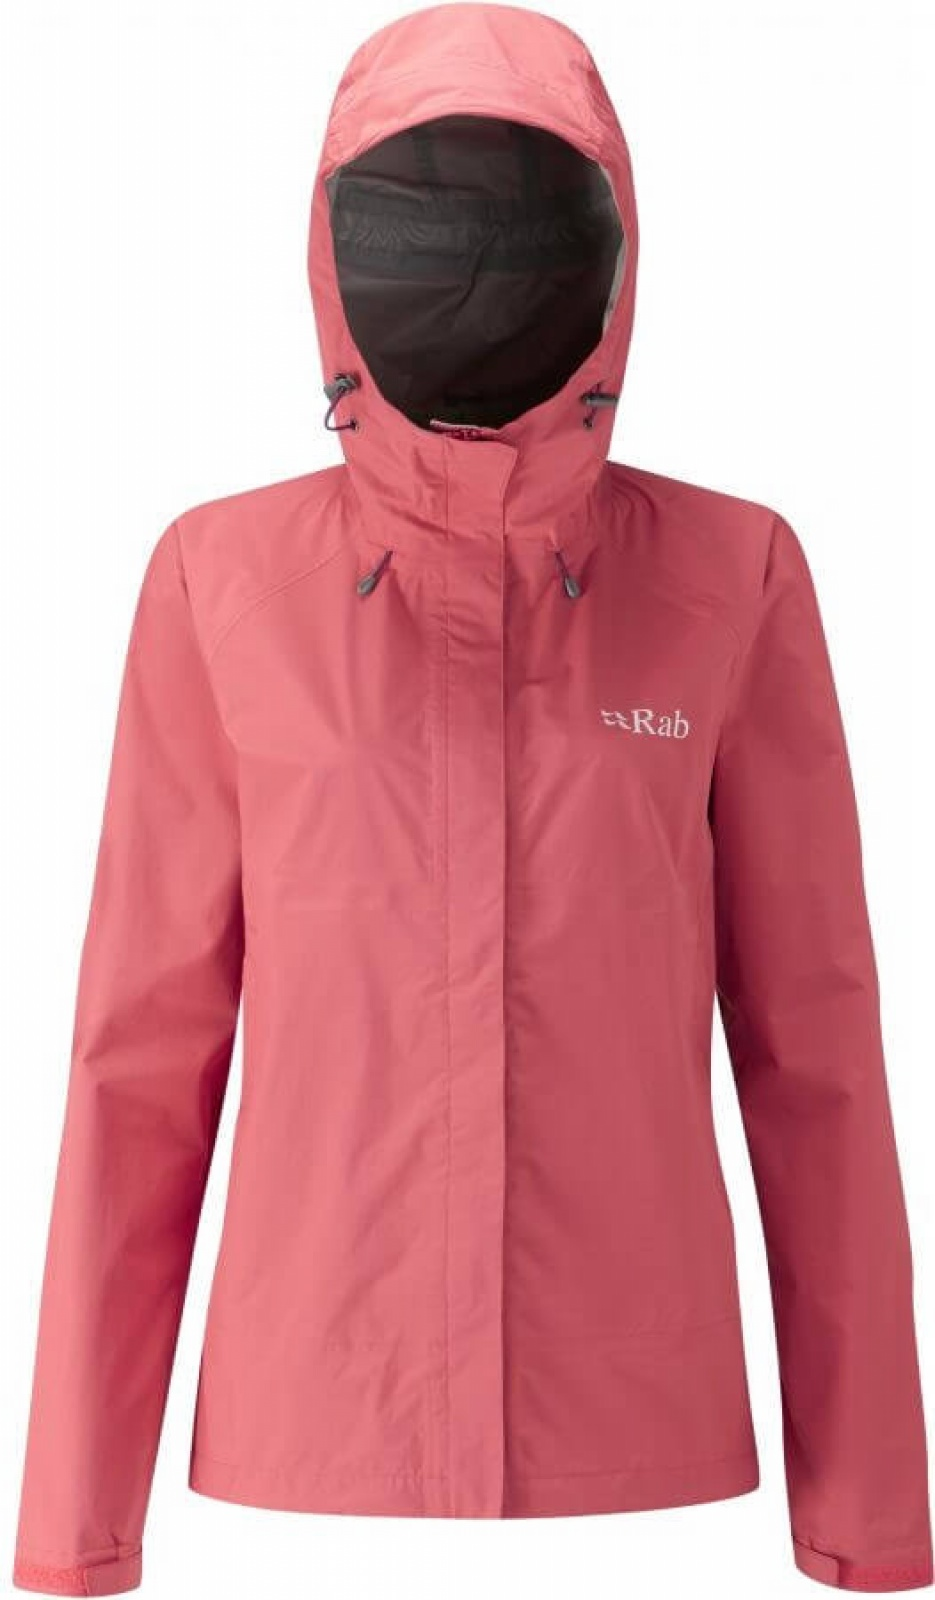 Куртка Rab Downpour Jacket Wmns Жен. штормовая